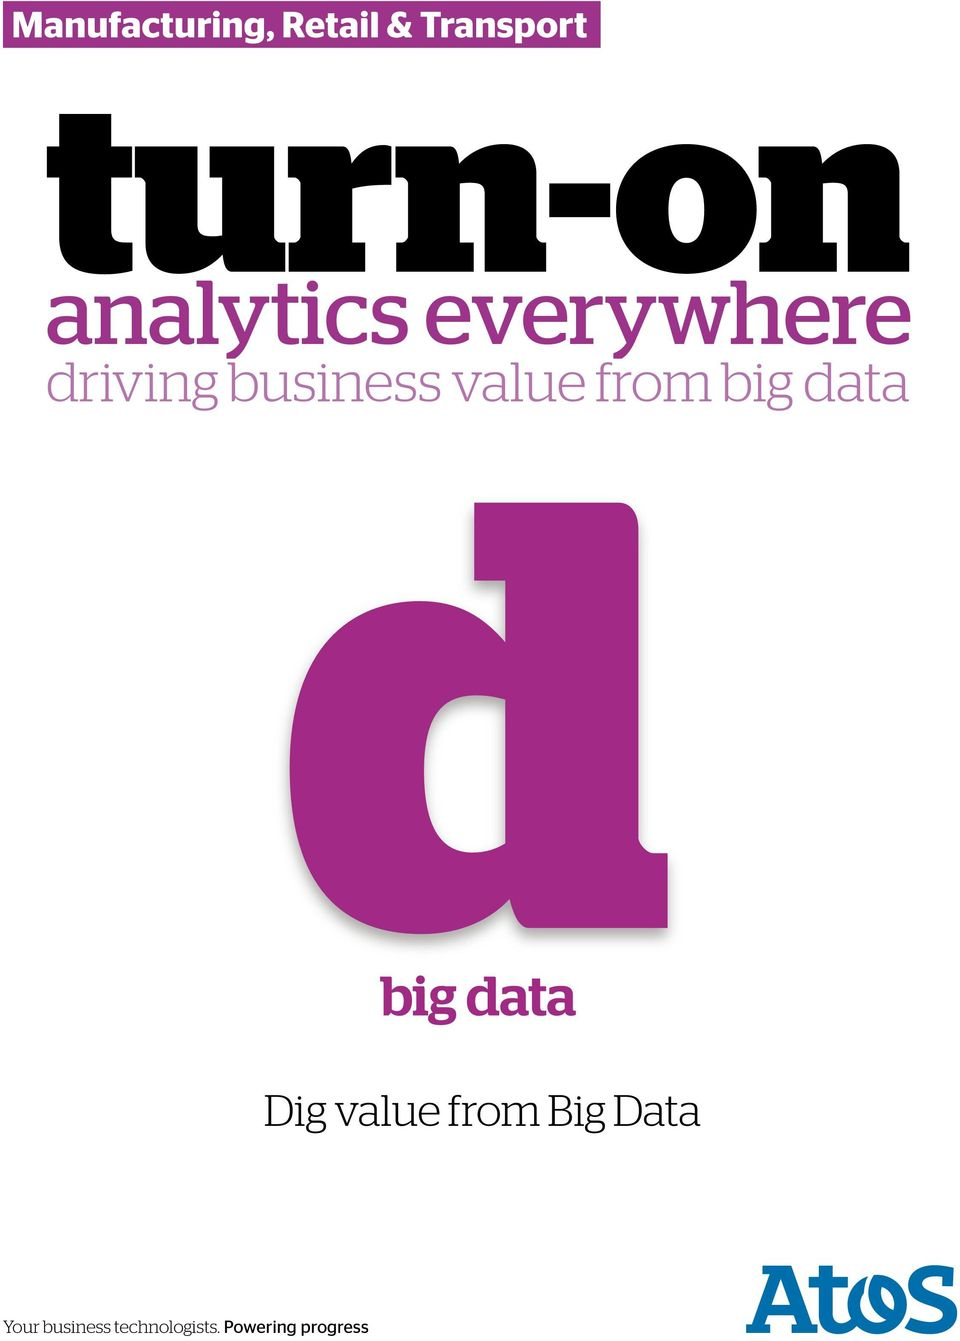 value from big data Dig value from Big